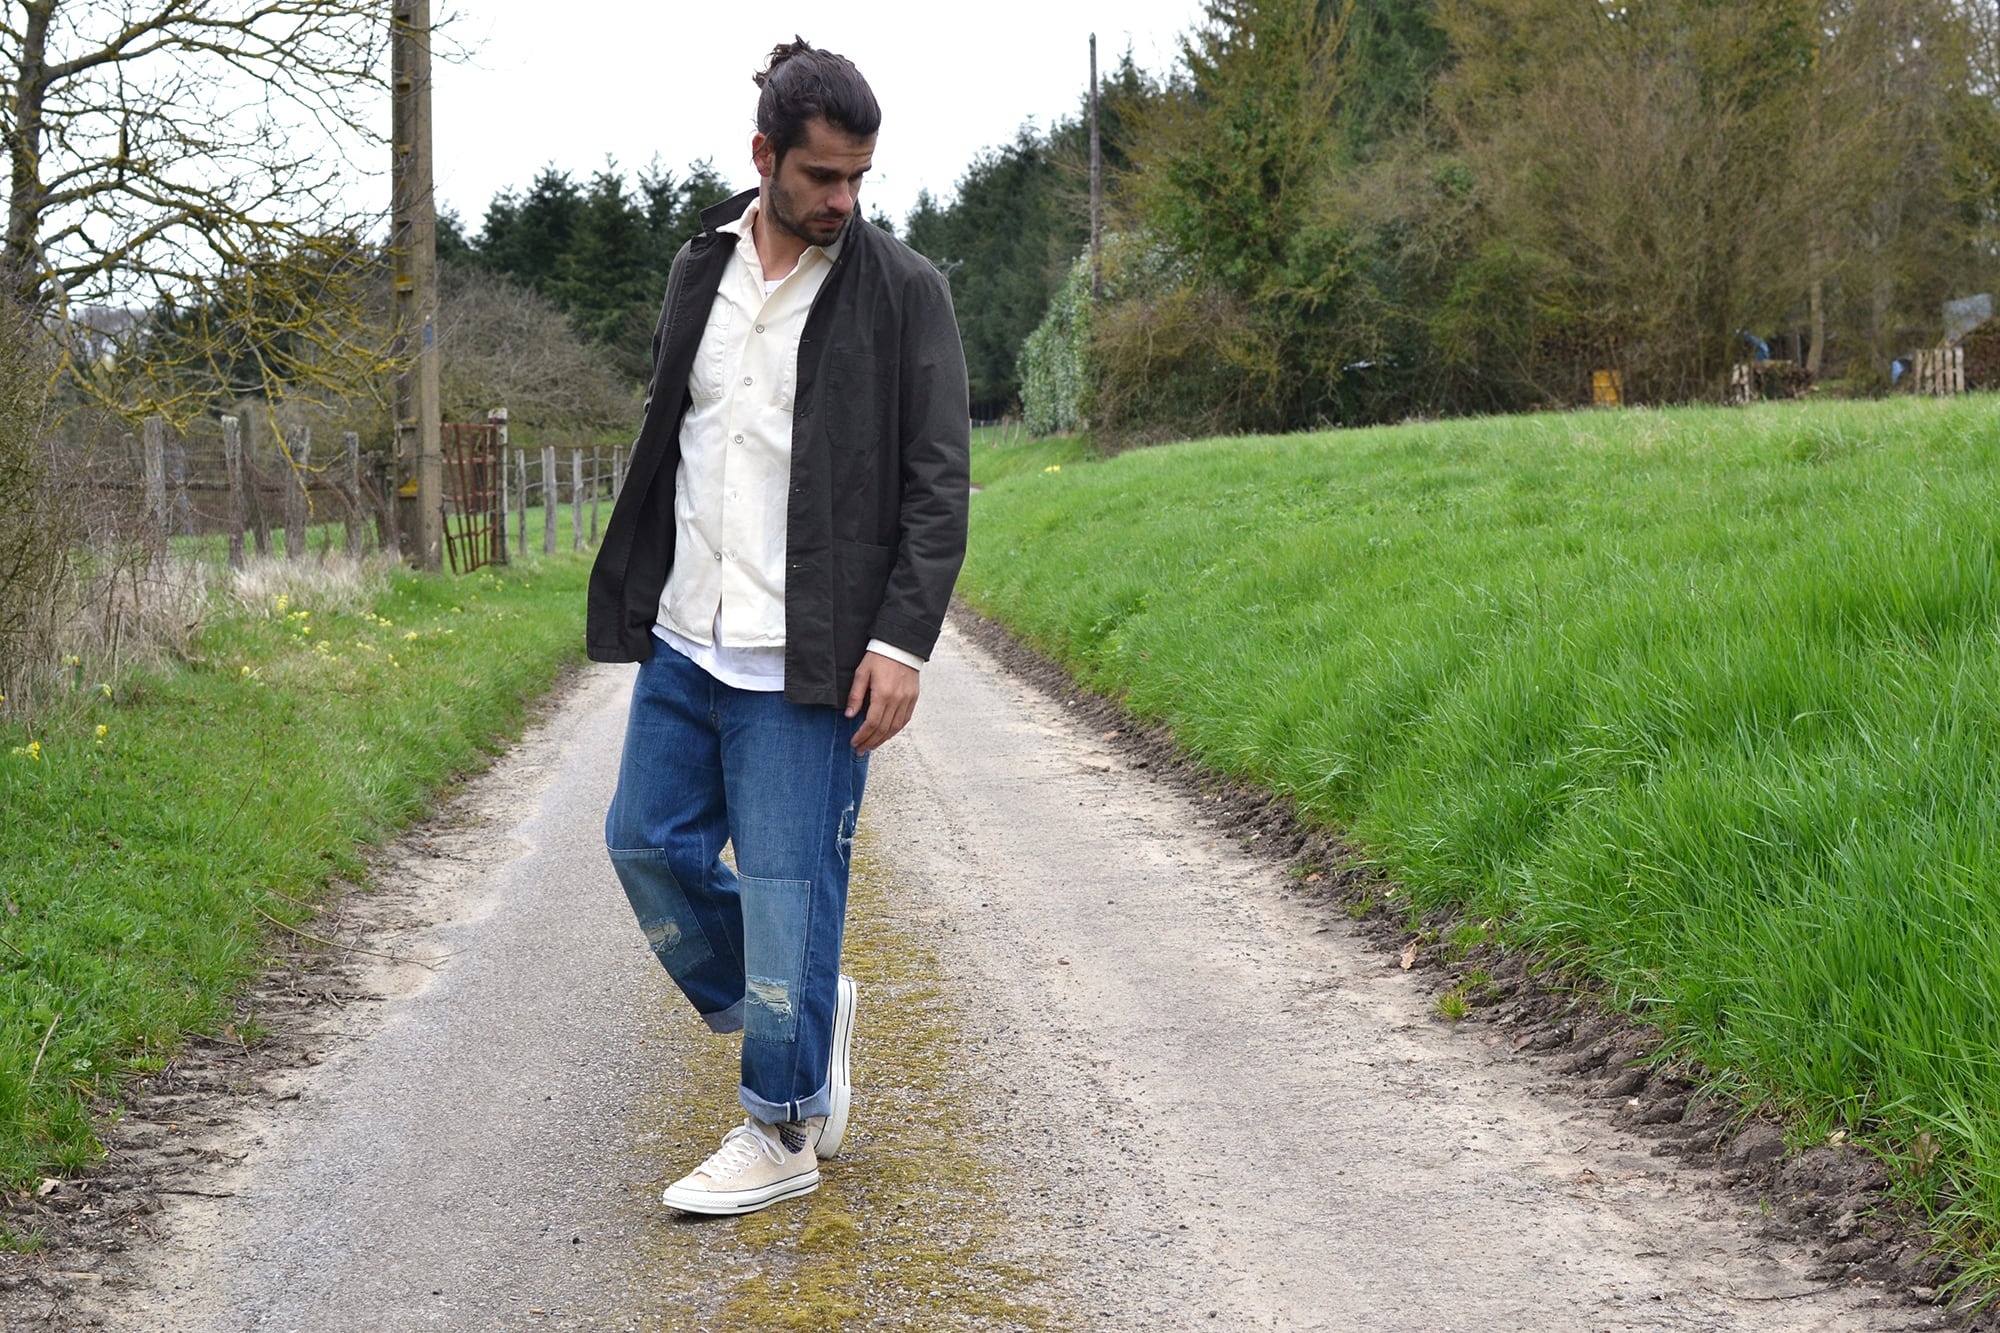 WOrkwear style with vetra work jacket, dockers x patrik ervell overshirt and Levi's Big E915 501 and converse CT70